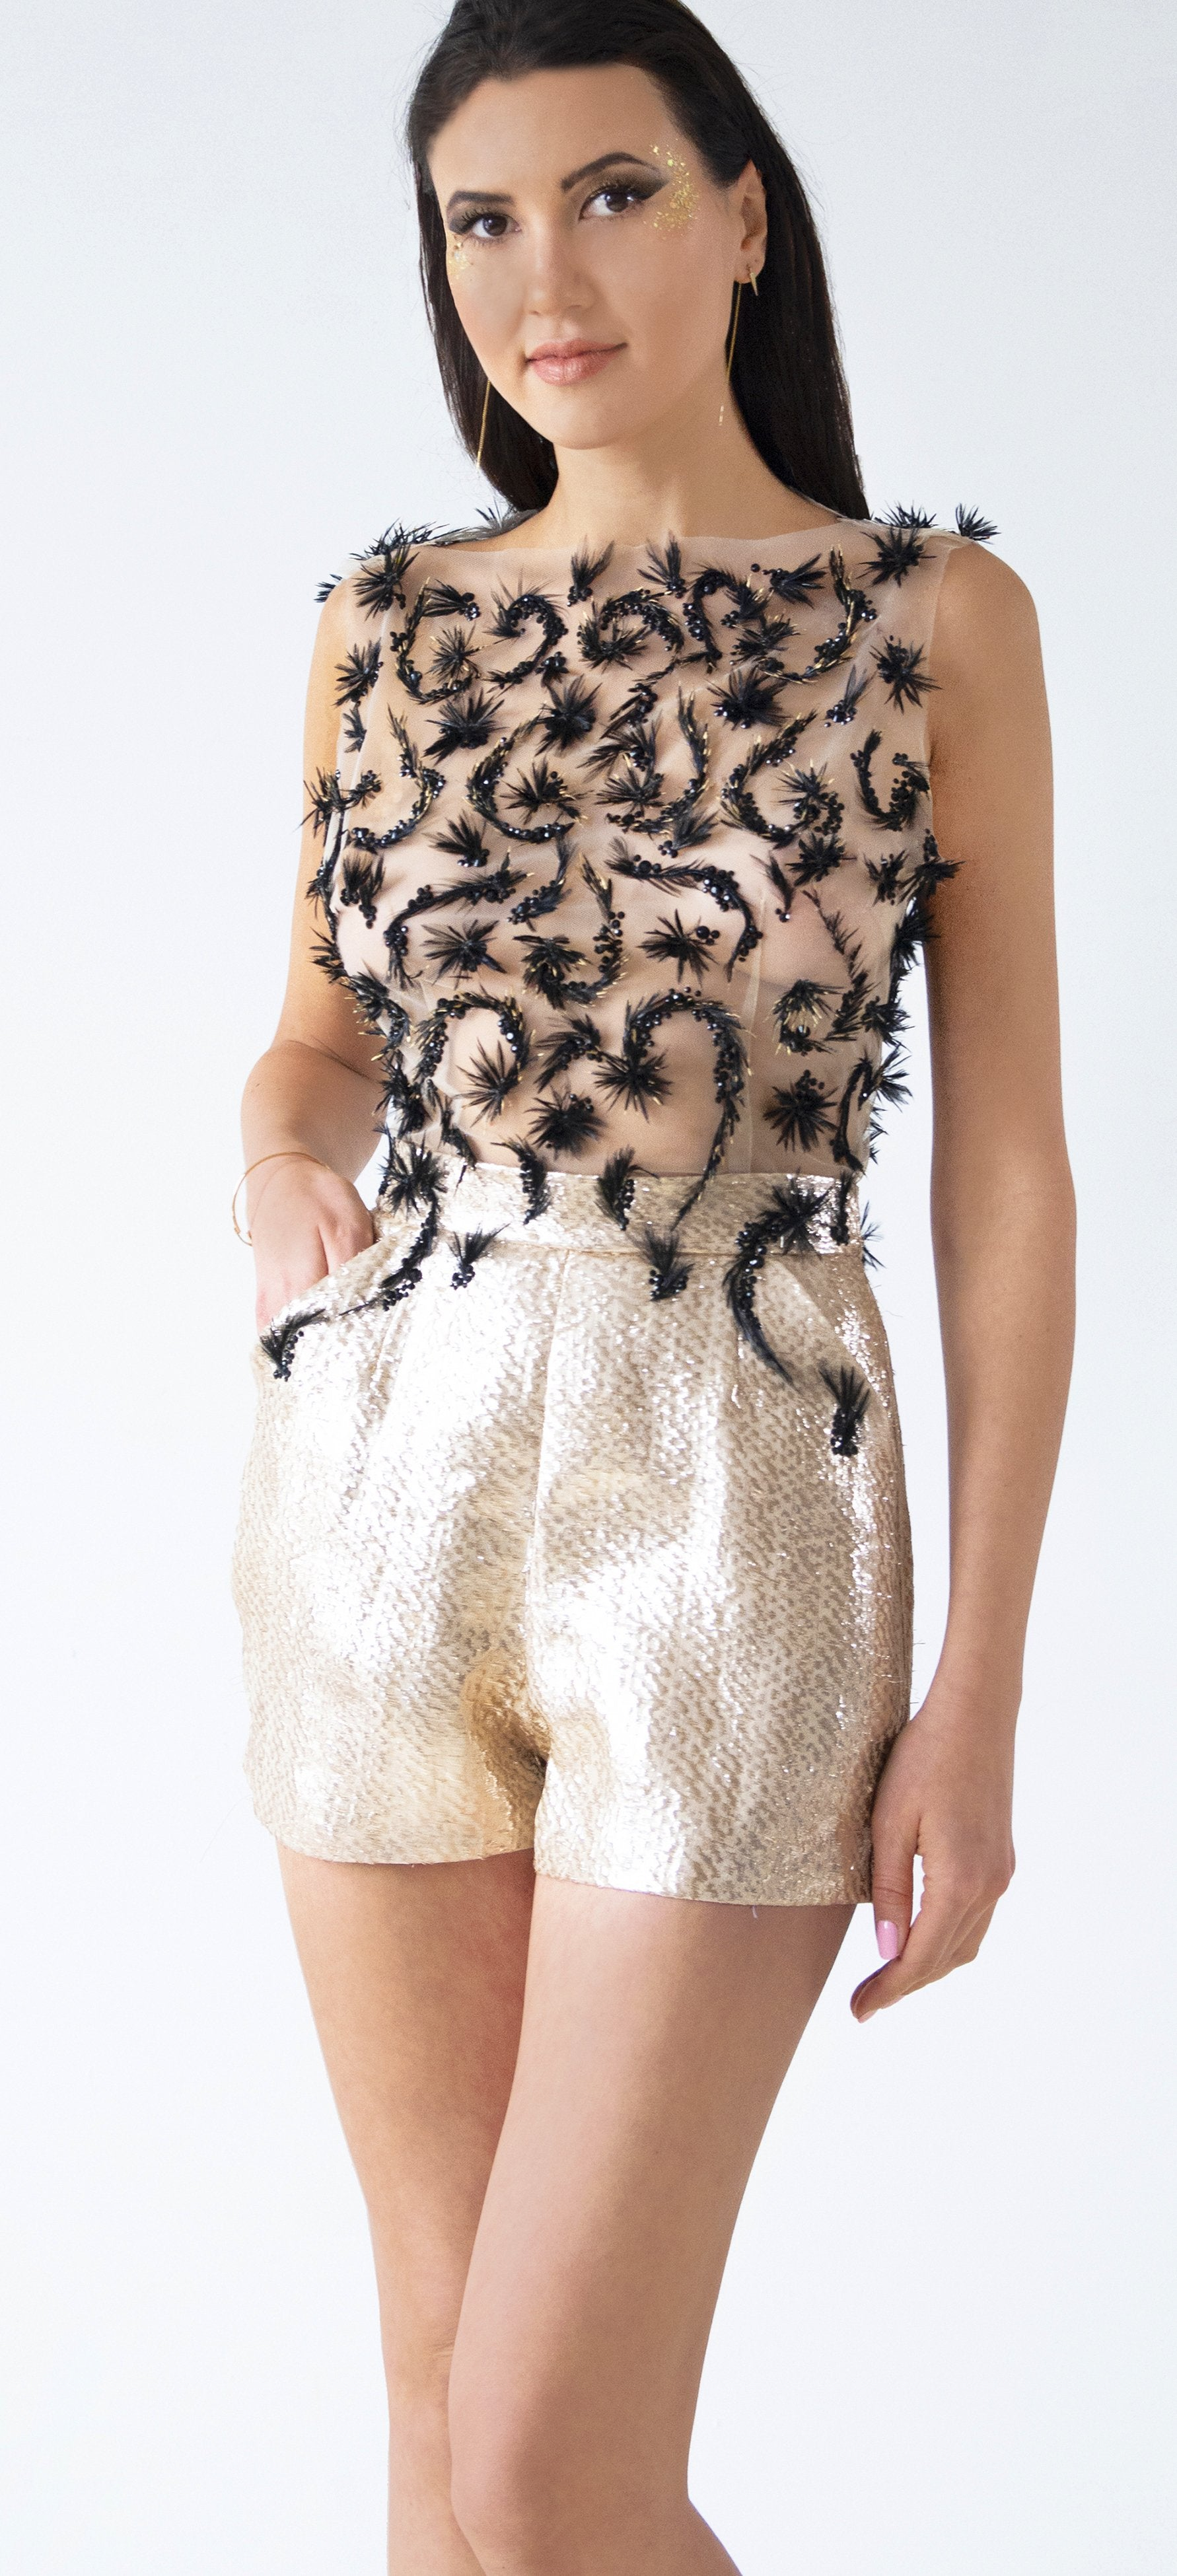 Swarovski Crystal & Feather Embellished Metallic Lamé Romper - KxLNewYork